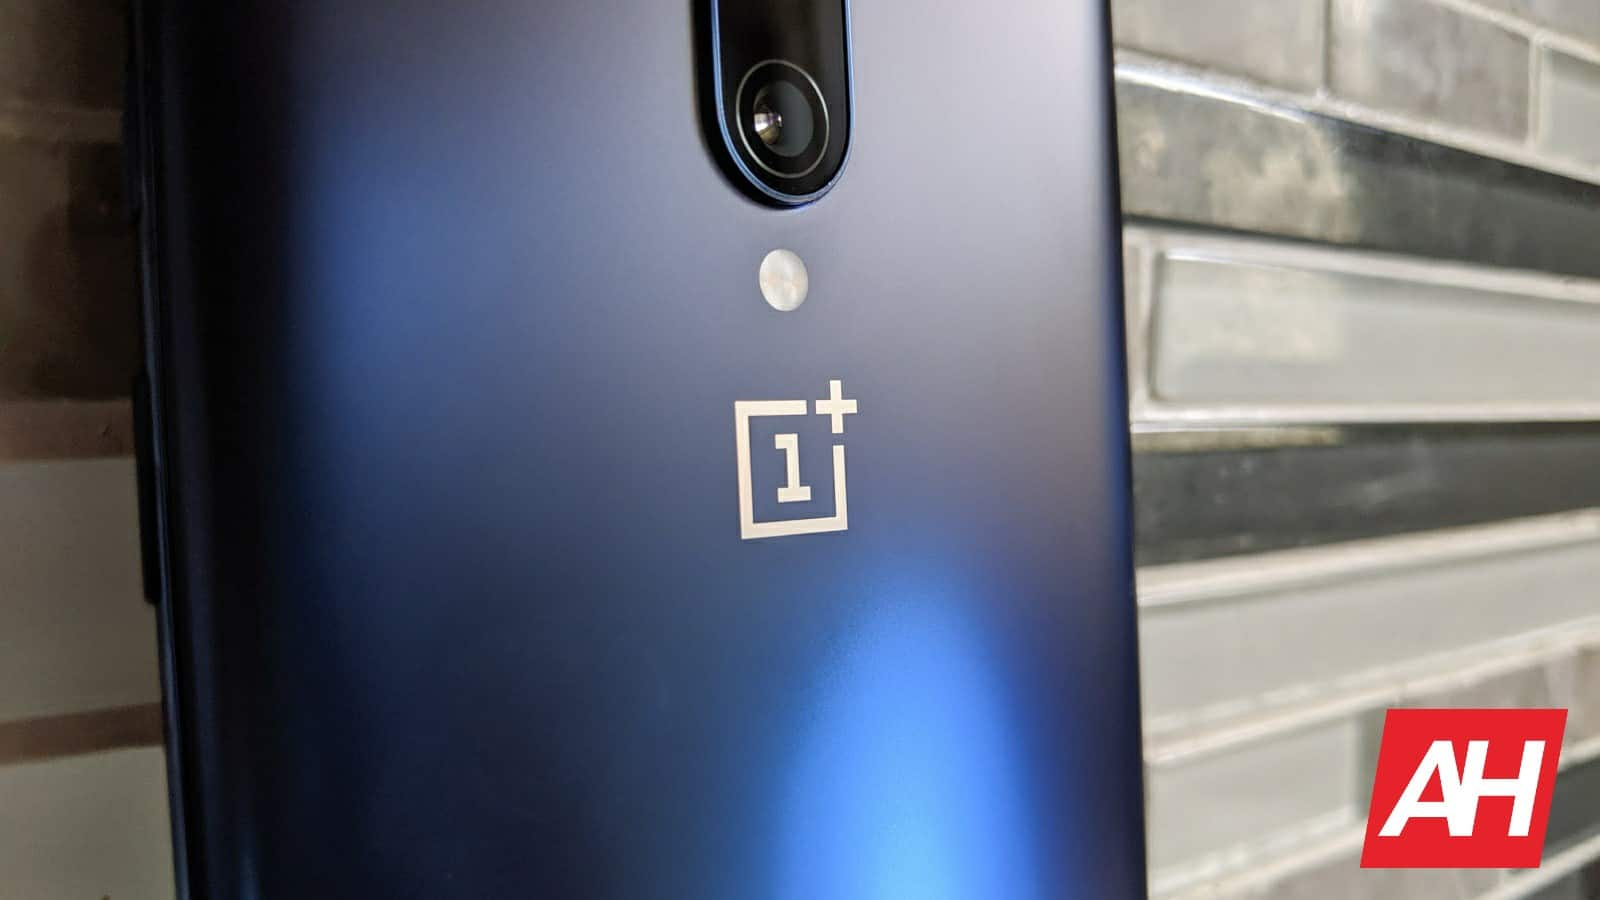 OnePlus 8 Pro And OnePlus 8 Officially Launched Starting $699